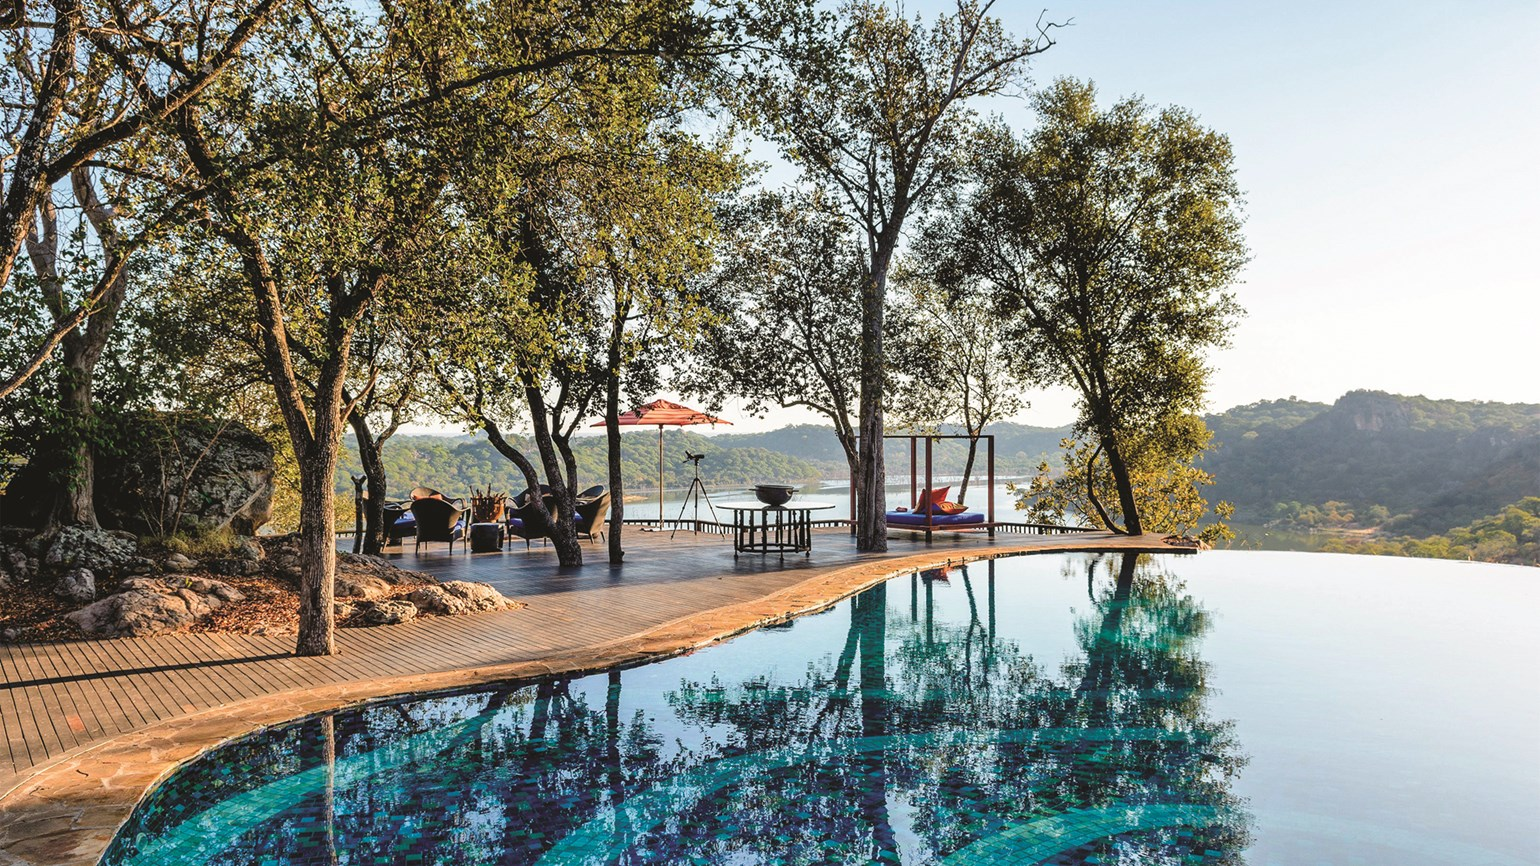 Singita creates 'Private' experiences